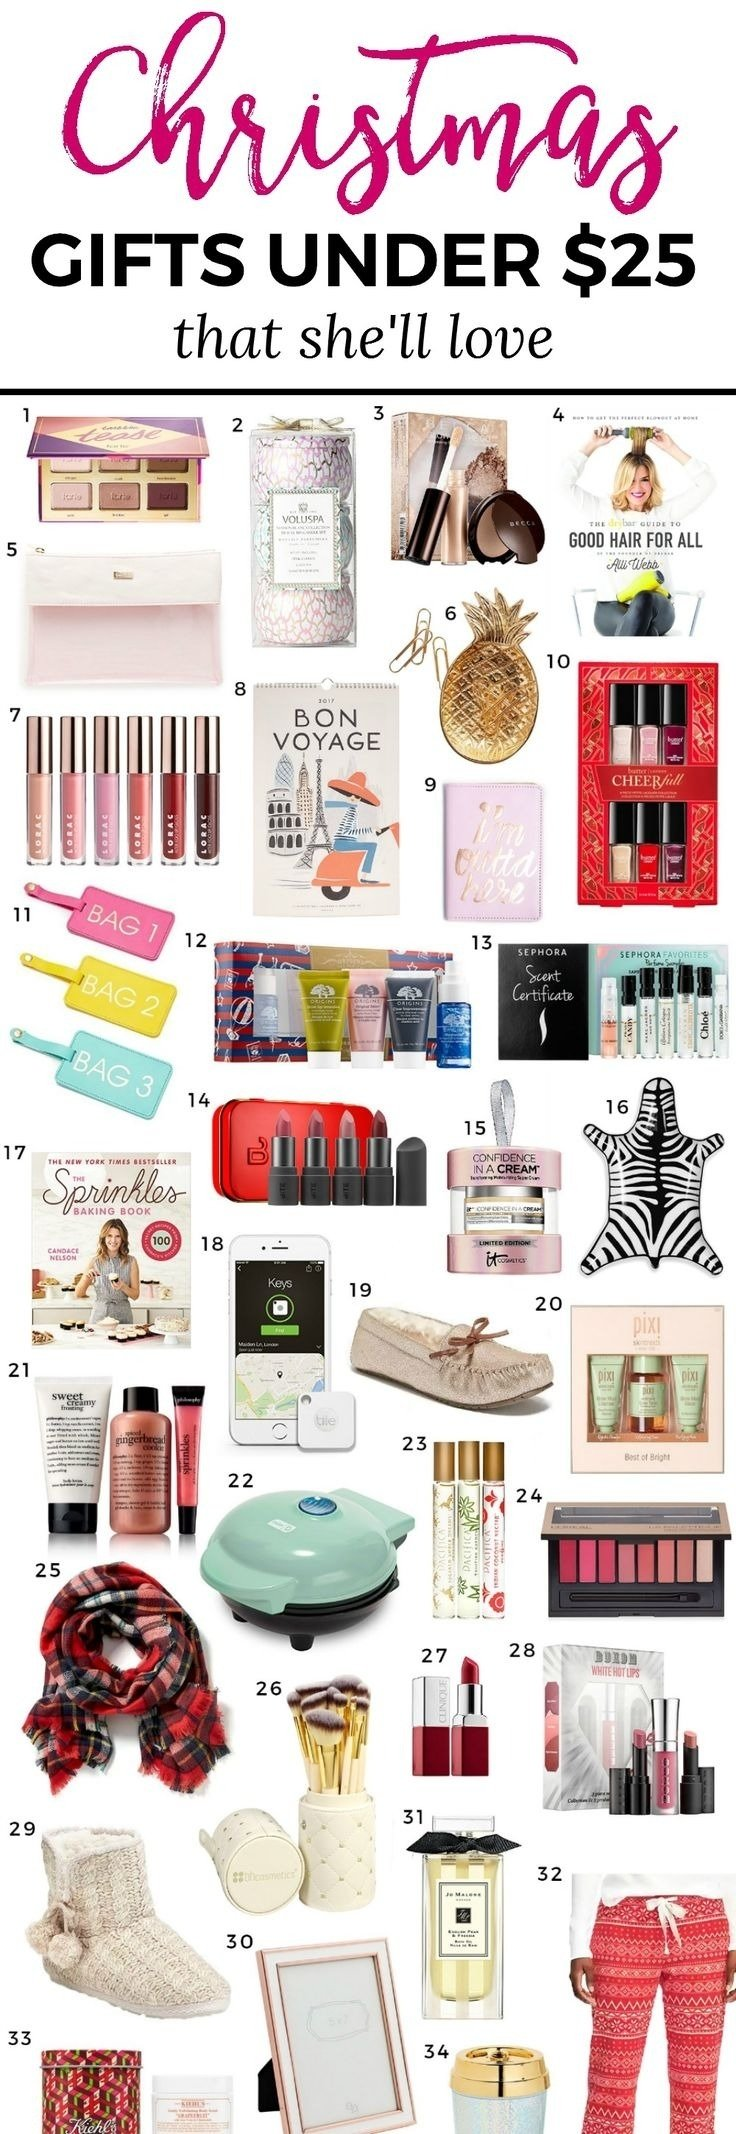 10 Wonderful Gift Ideas For A 21 Year Old Female christmas gift ideas for women madinbelgrade 7